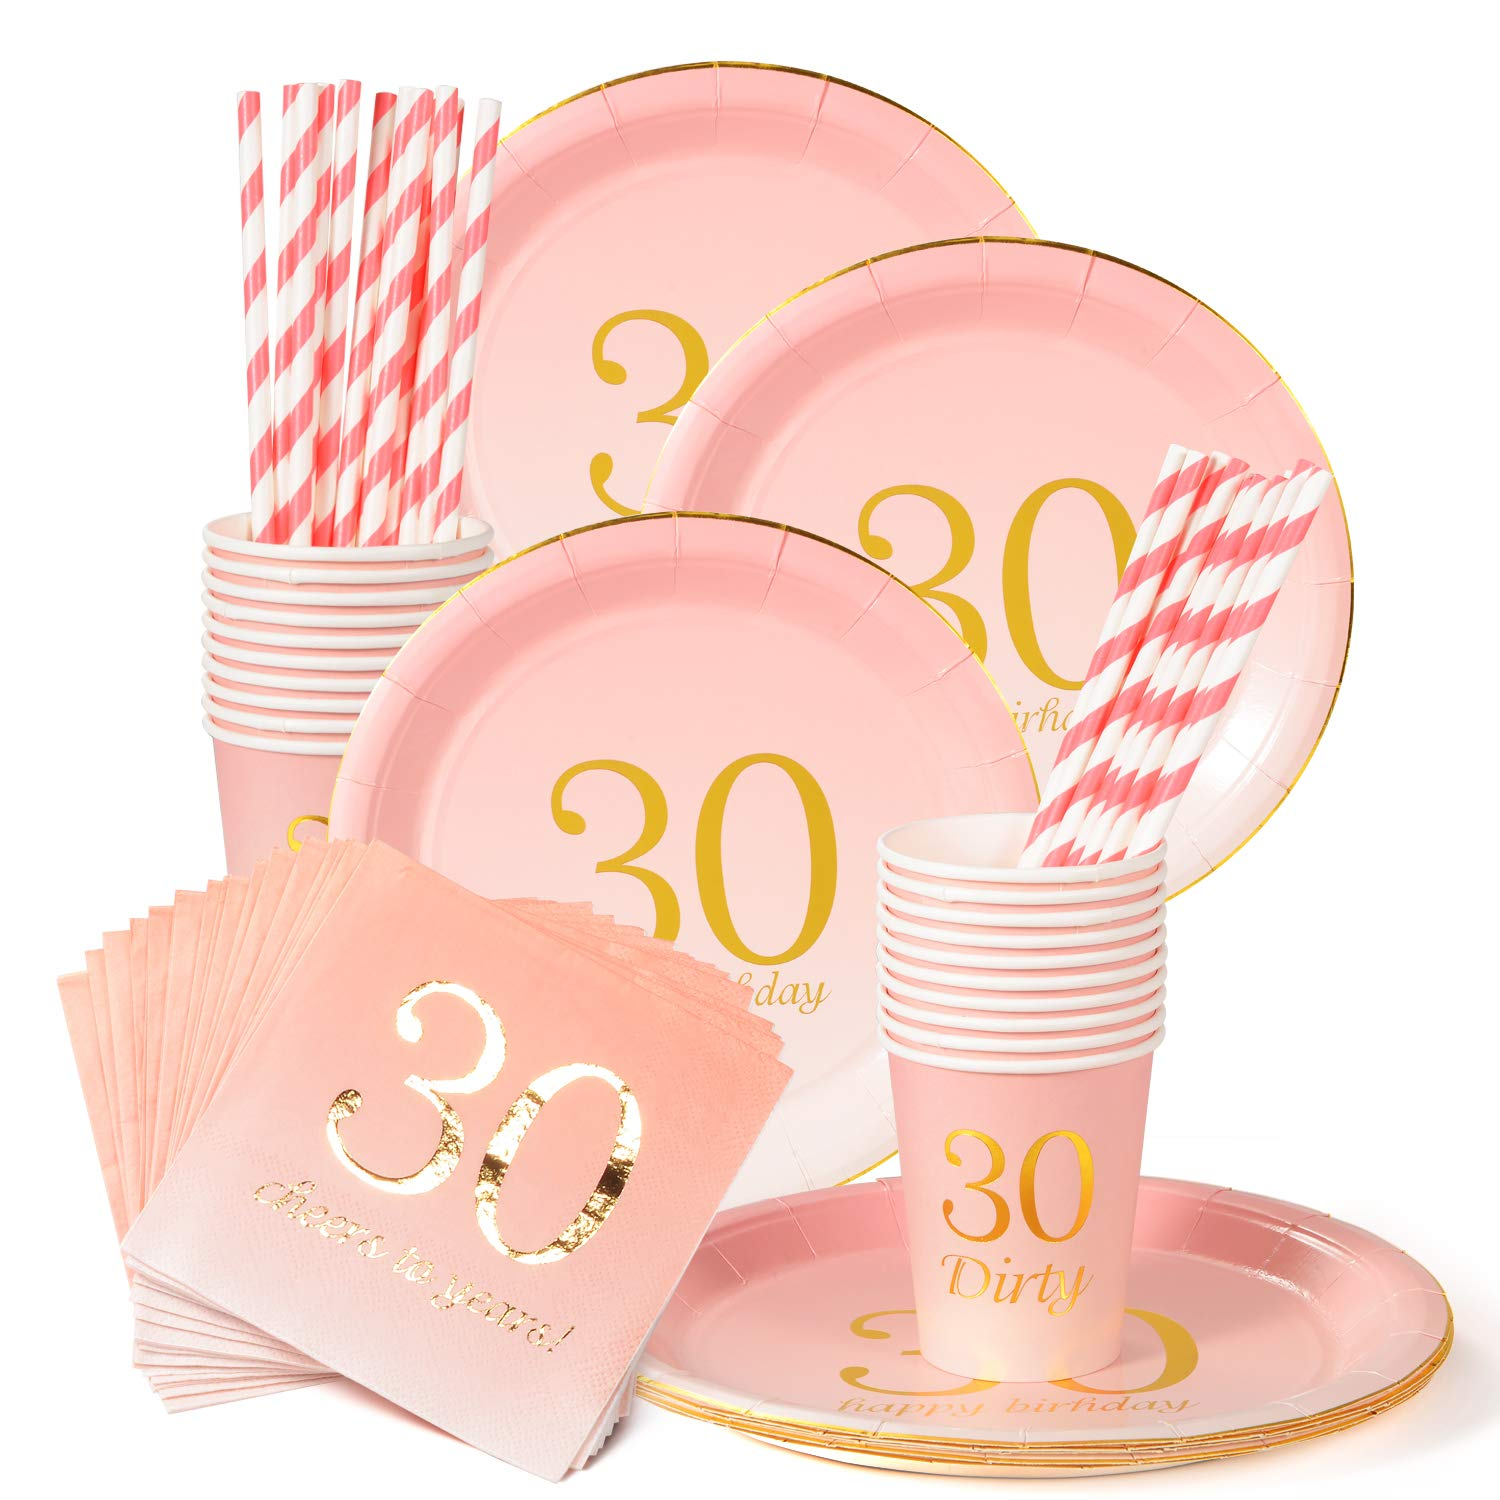 30th Birthday Decorations Party Supplies Napkins,30th Birthday Gifts,Cups,Plates,Straws - 24 Sets (30th Birthday) by Sllyfo